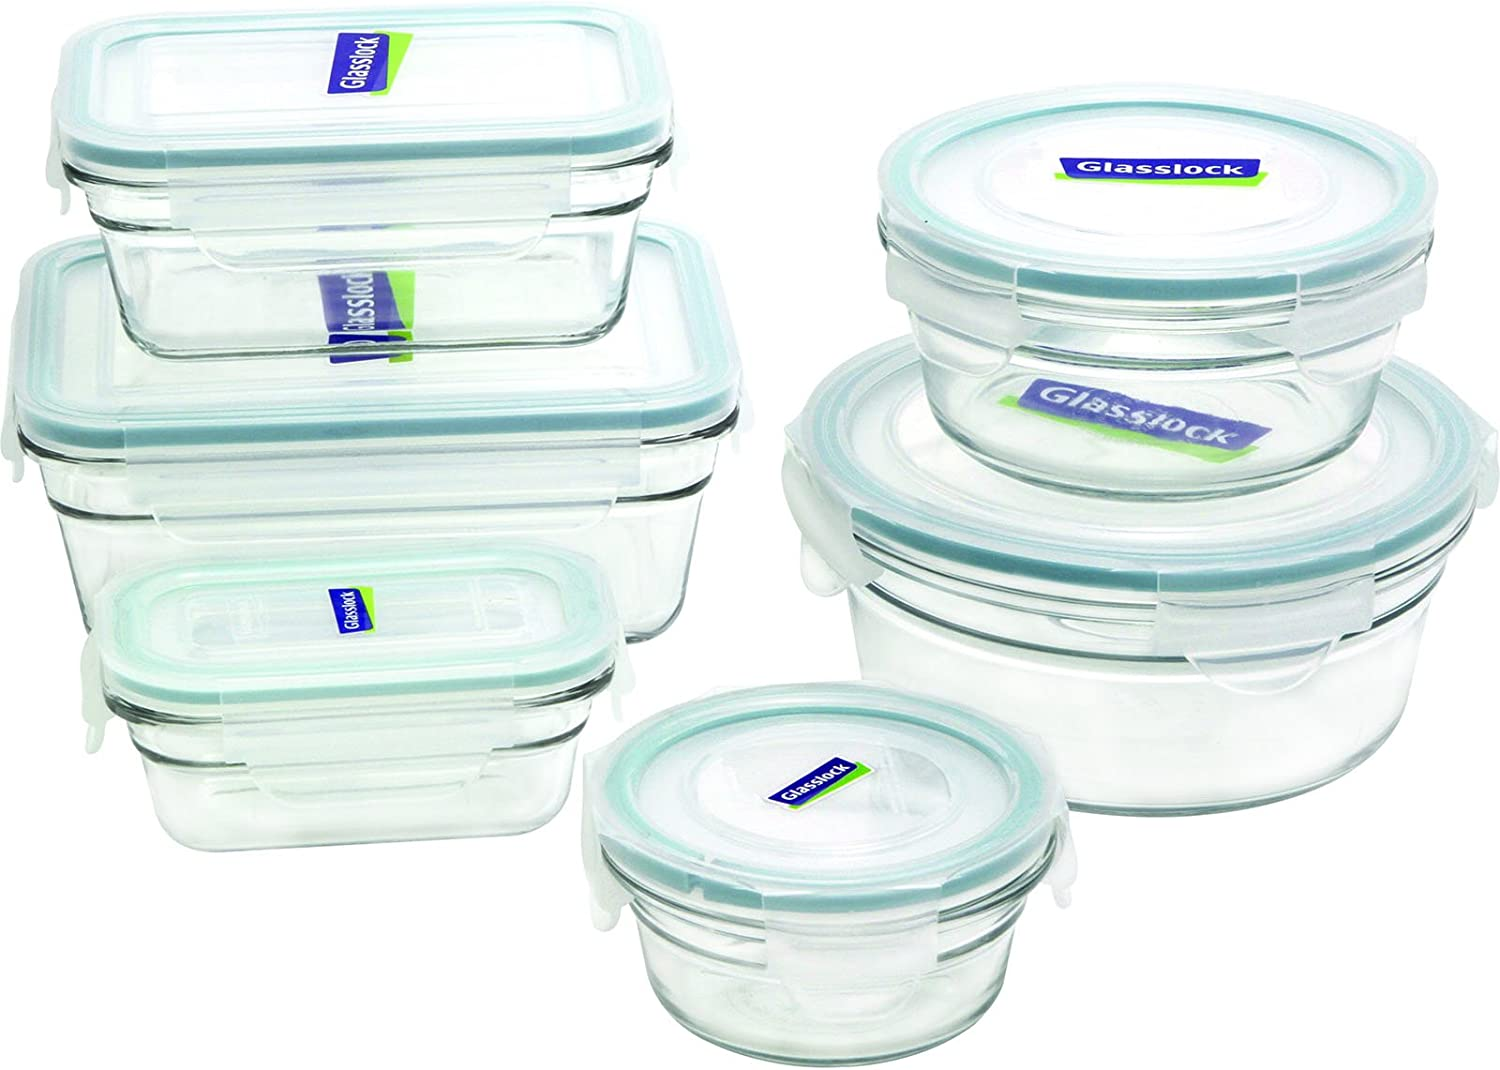 Glasslock 12-Piece Rectangle and Round Assorted Oven Safe Container Set